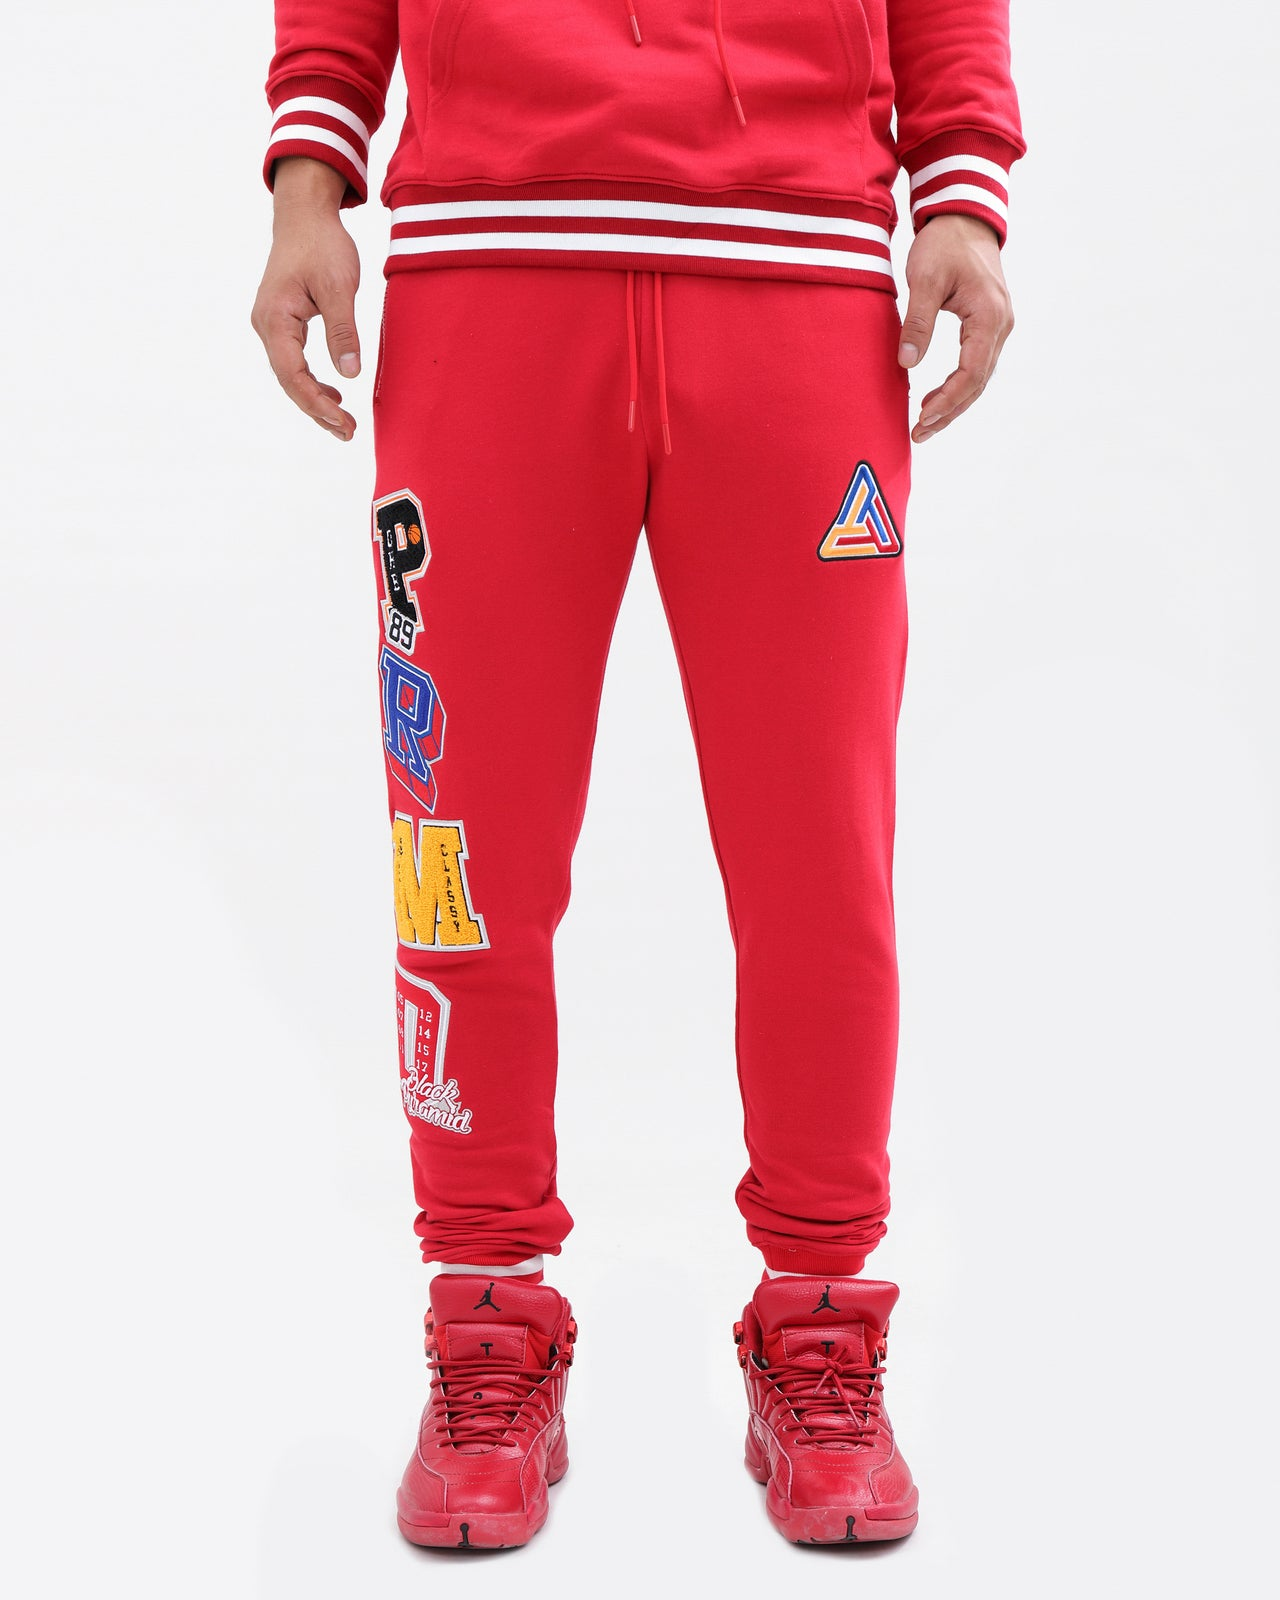 Varsity Collection Pants-color: red